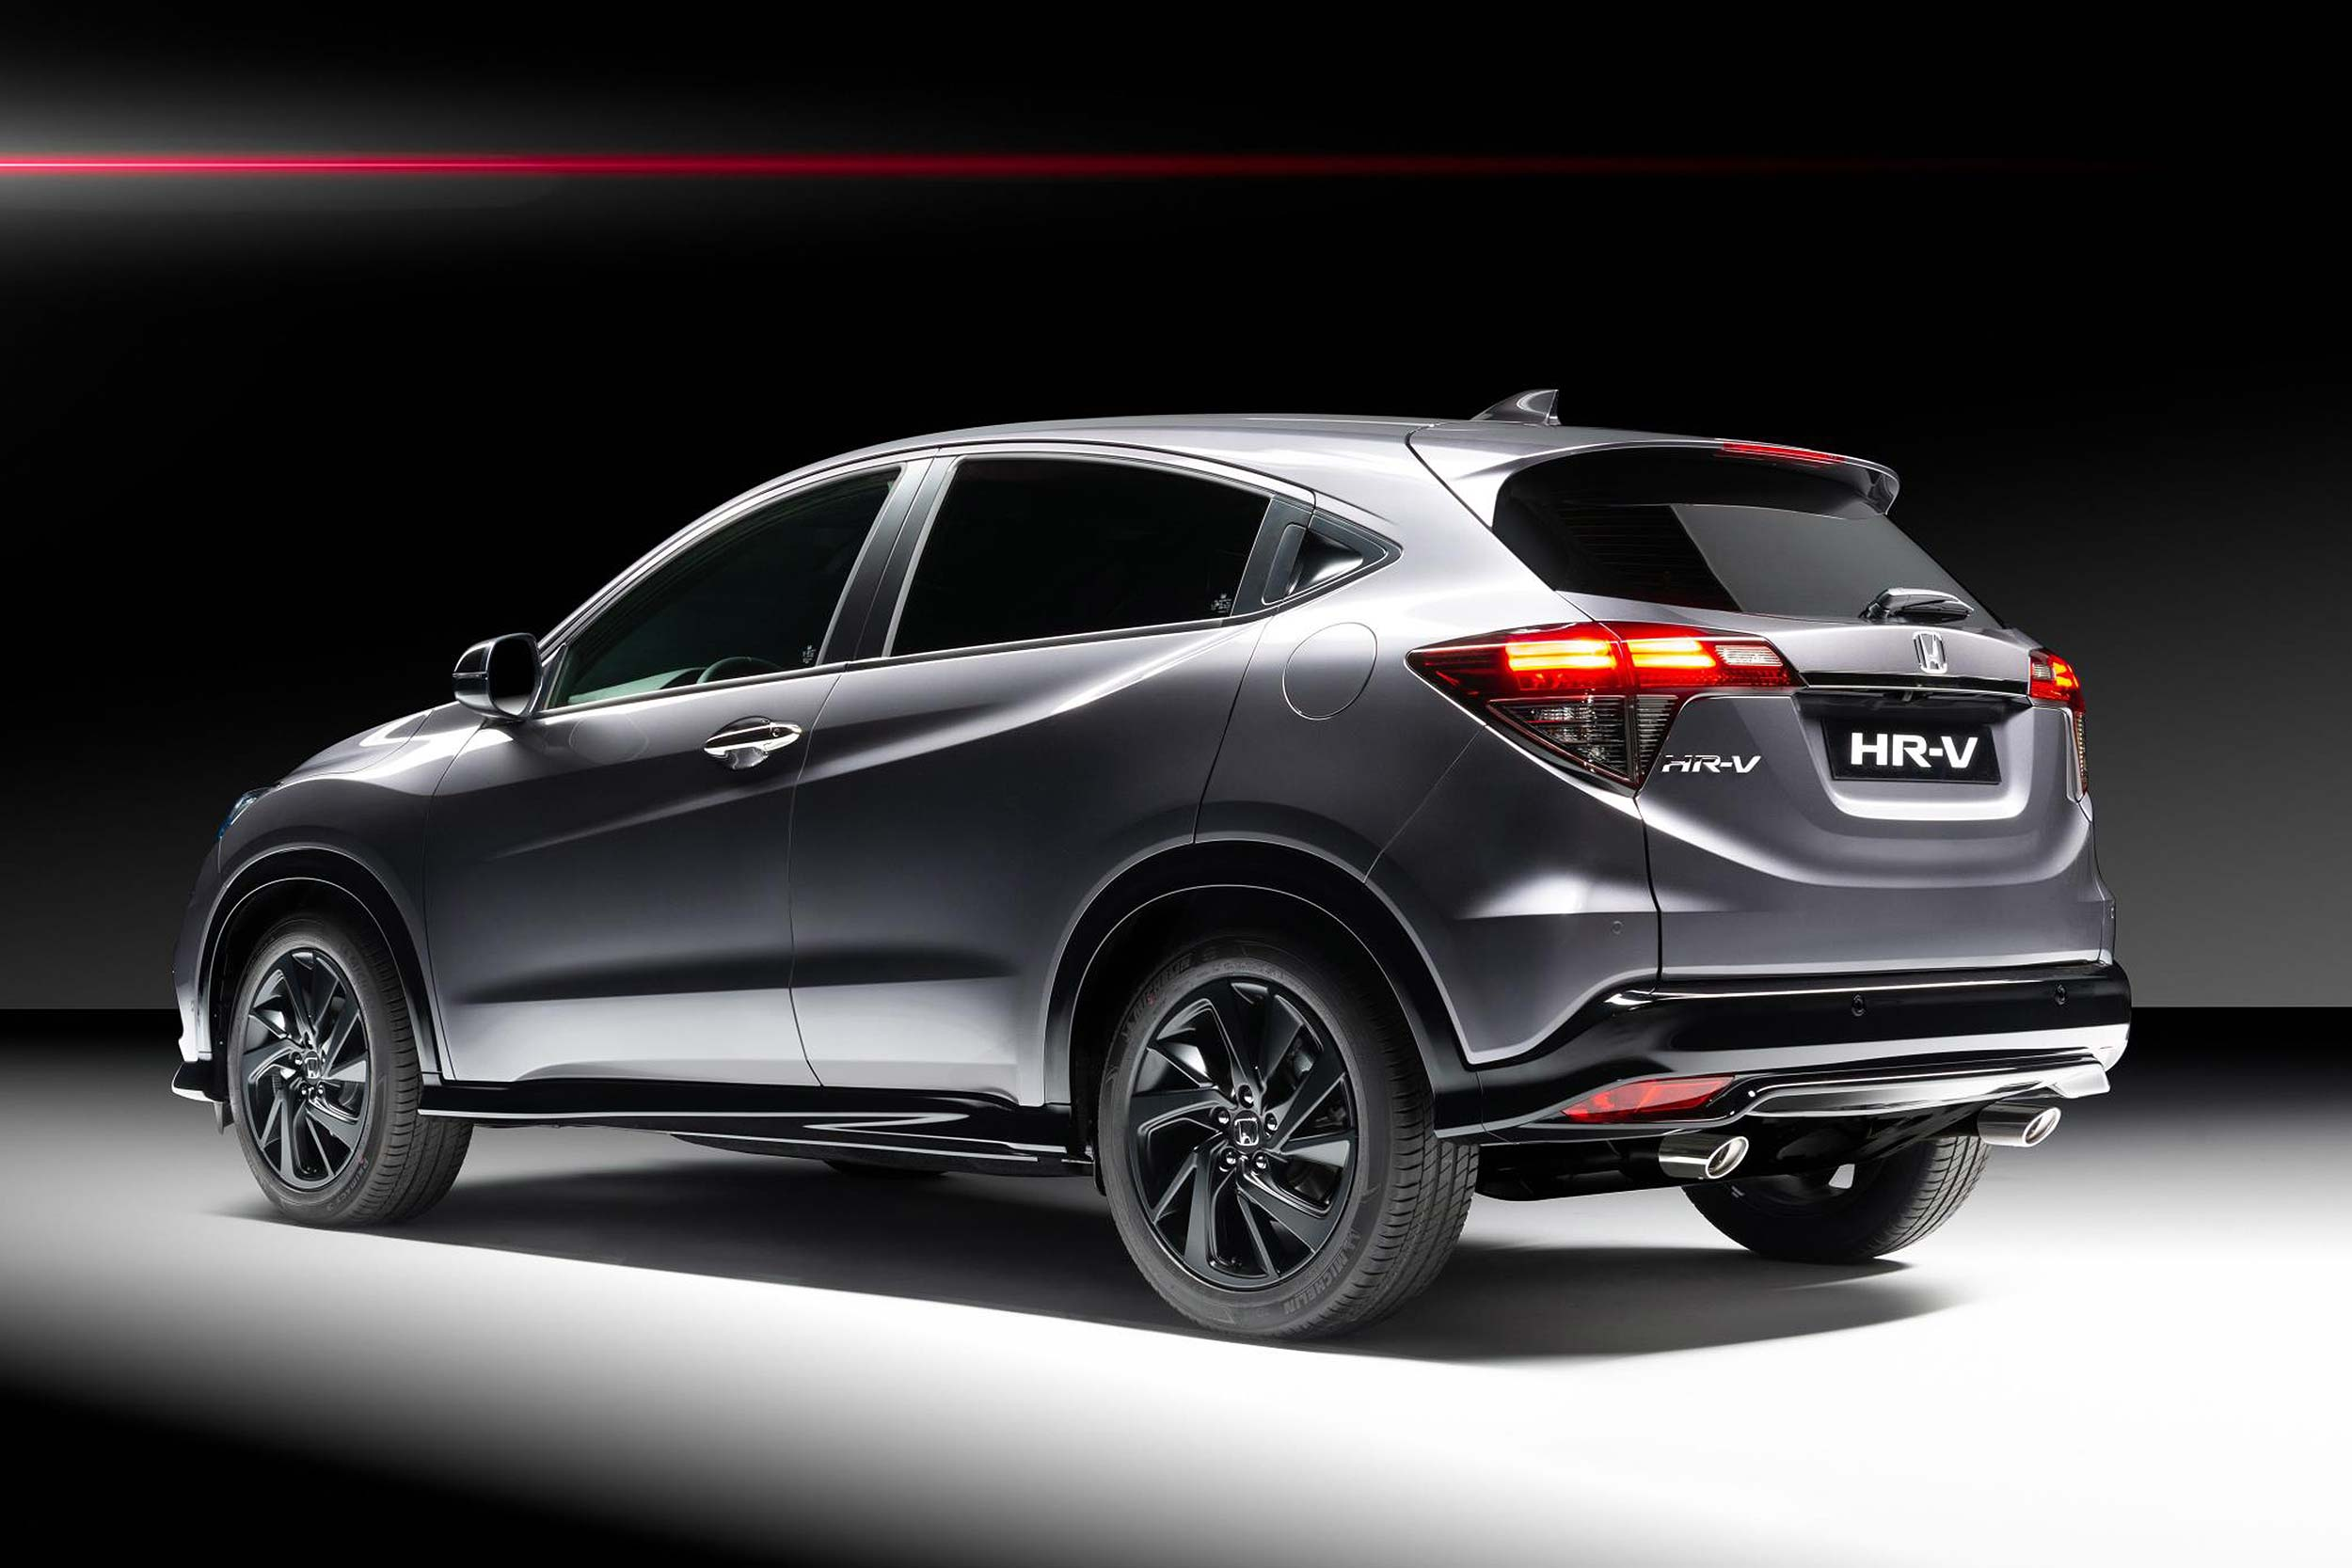 Honda Hrv Avis Honda Hr V Sport Brings More Performance Racier Looks To Small